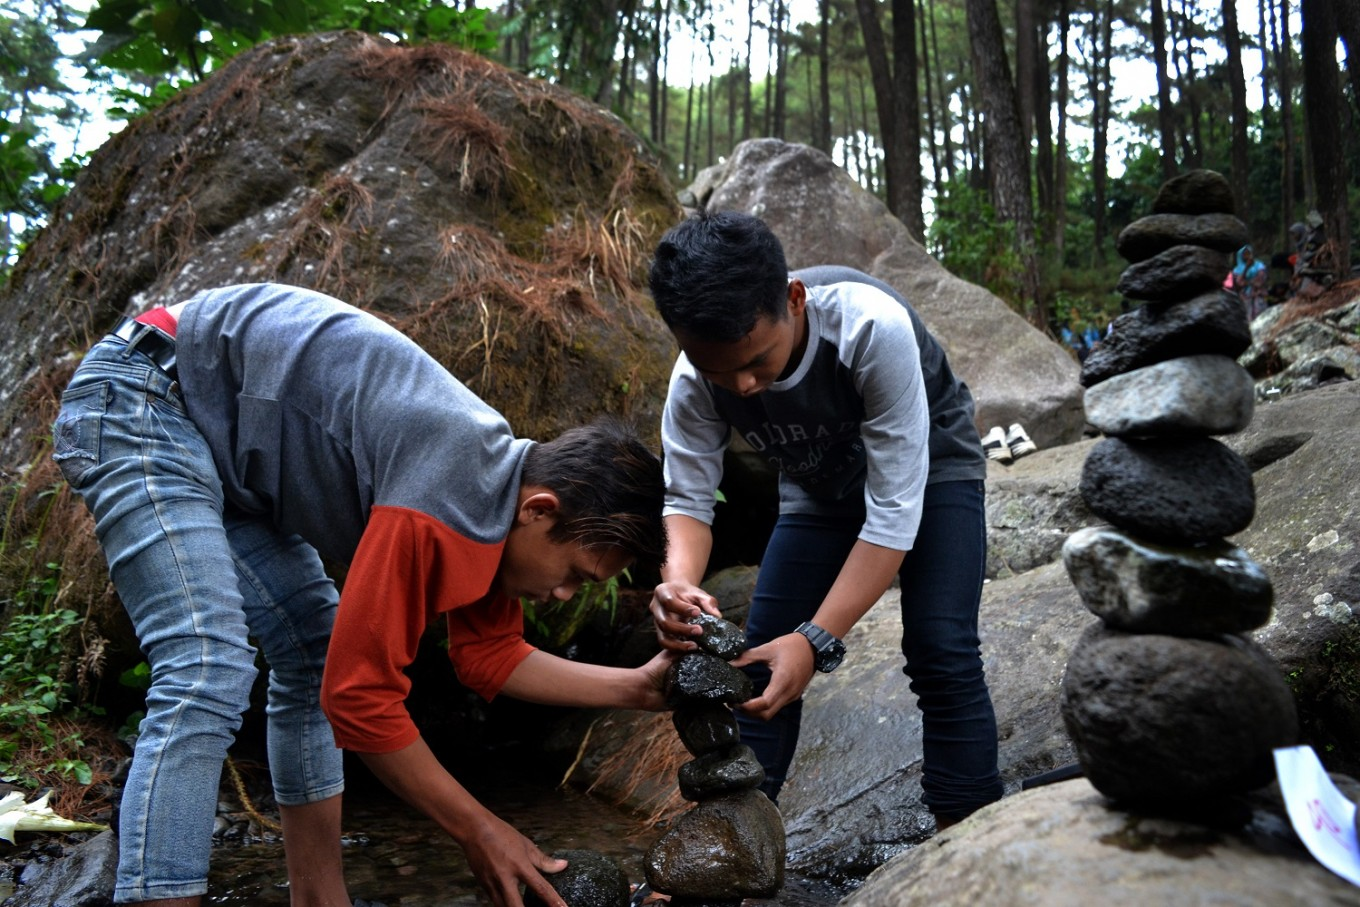 Tourists take part in a rock balancing activity during the third installment of the Earth Gravity Festival.